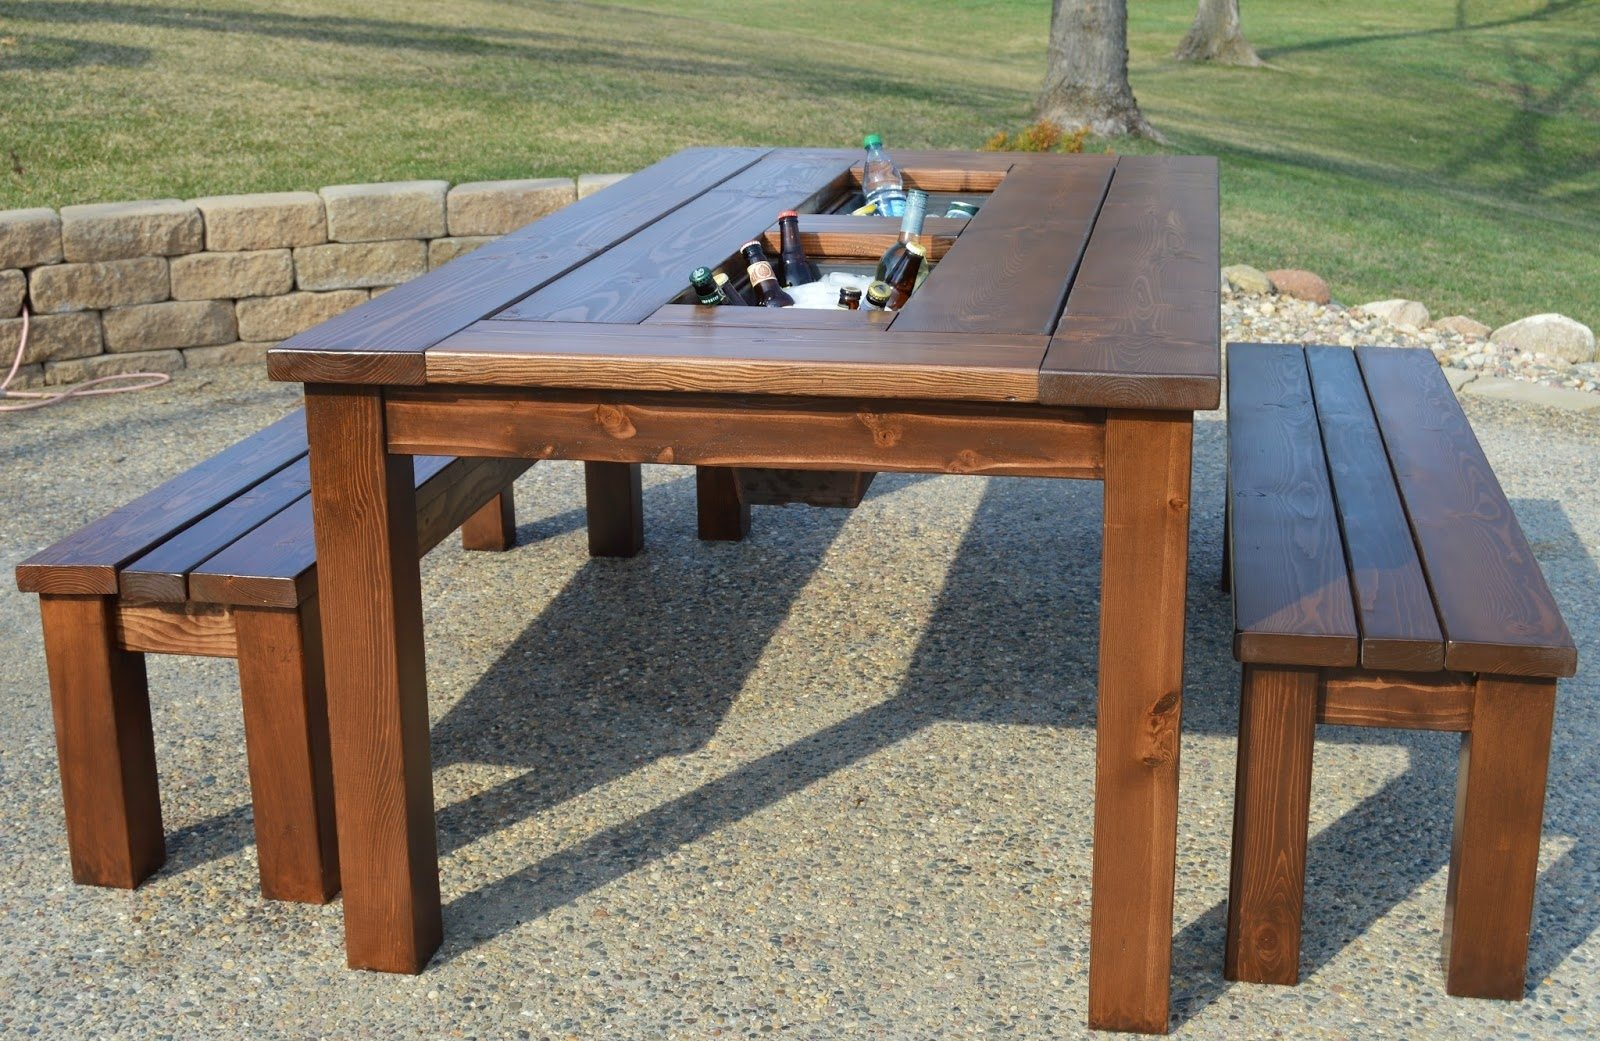 wooden patio furniture full size of patios:2 chairs and table set outdoor small outdoor XQNFPQK